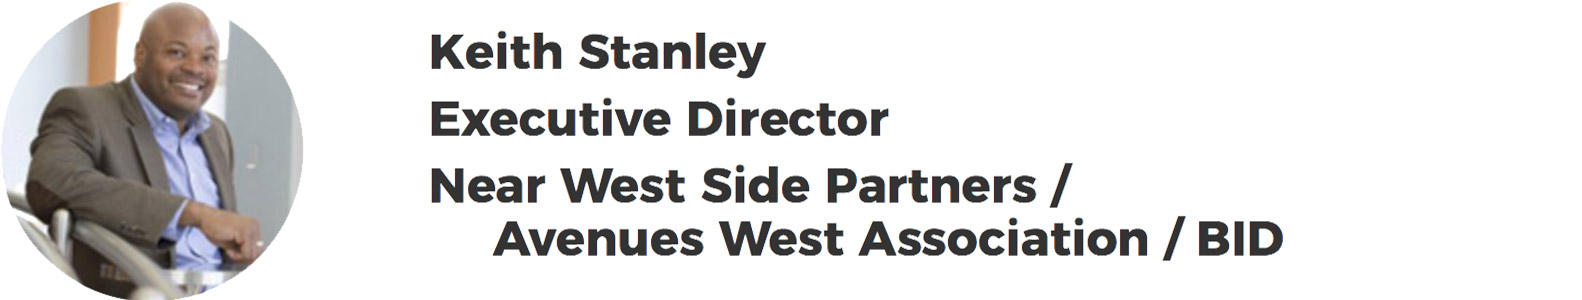 Keith Stanley – Executive Director – Near West Side Partners / Avenues West Association / BID